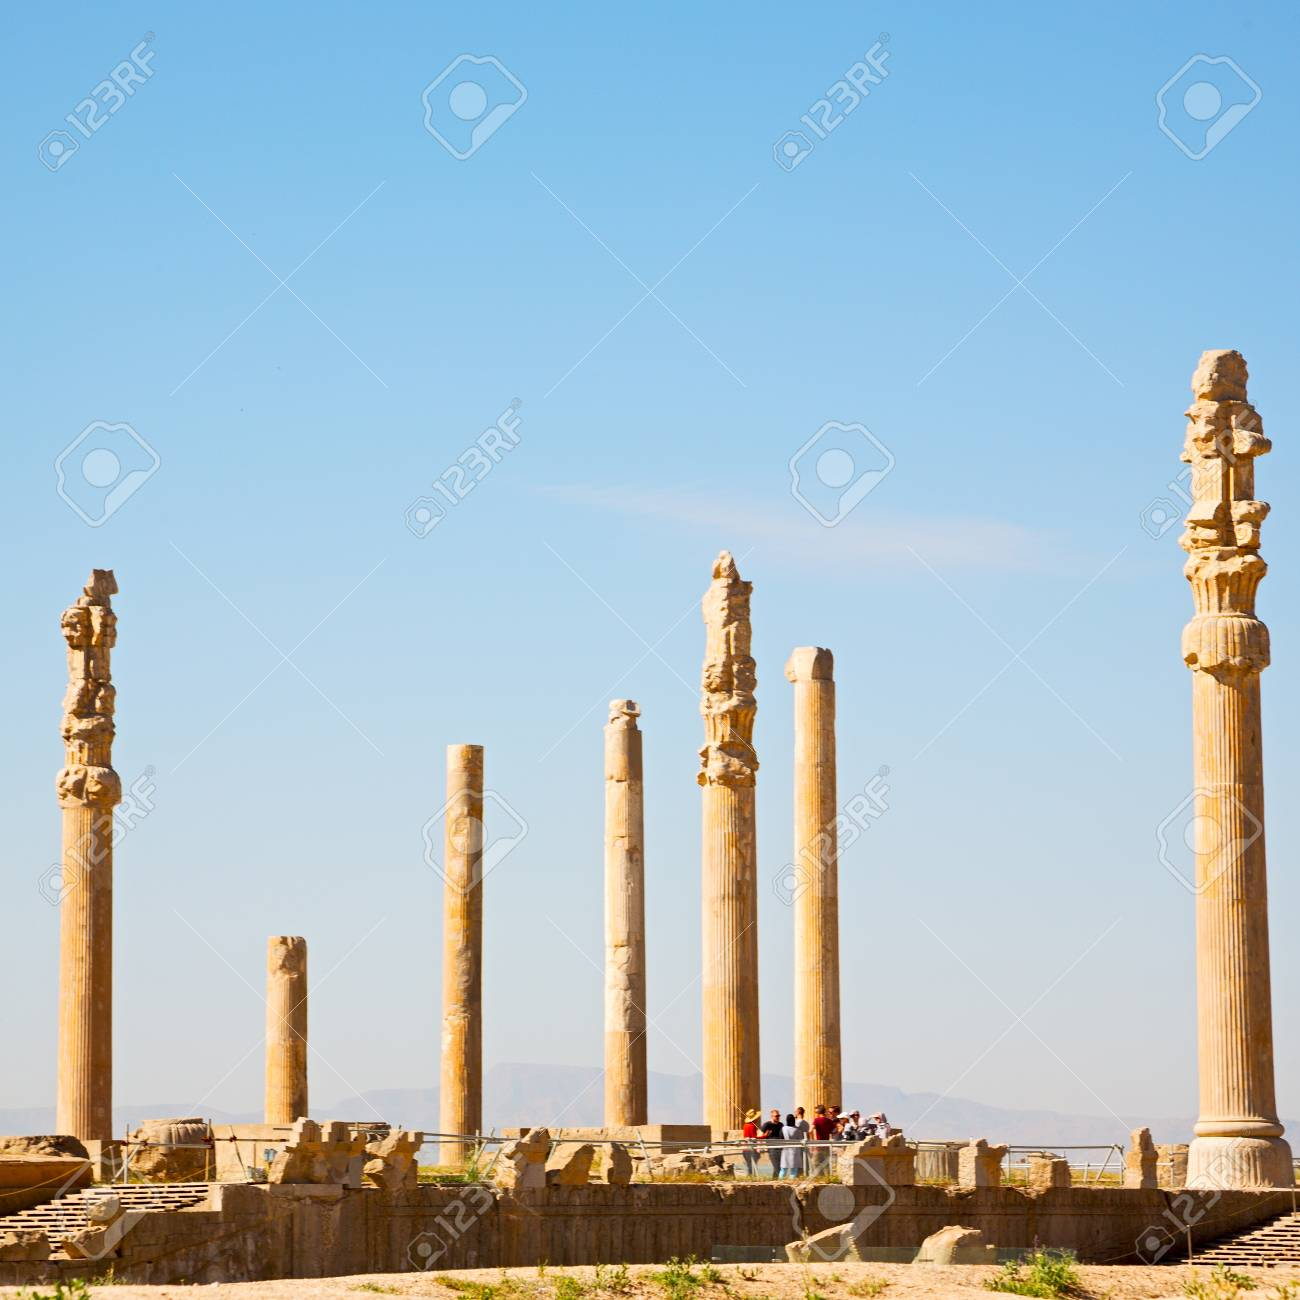 Blur In Iran Persepolis The Old Ruins Historical Destination Stock Photo Picture And Royalty Free Image Image 70009230